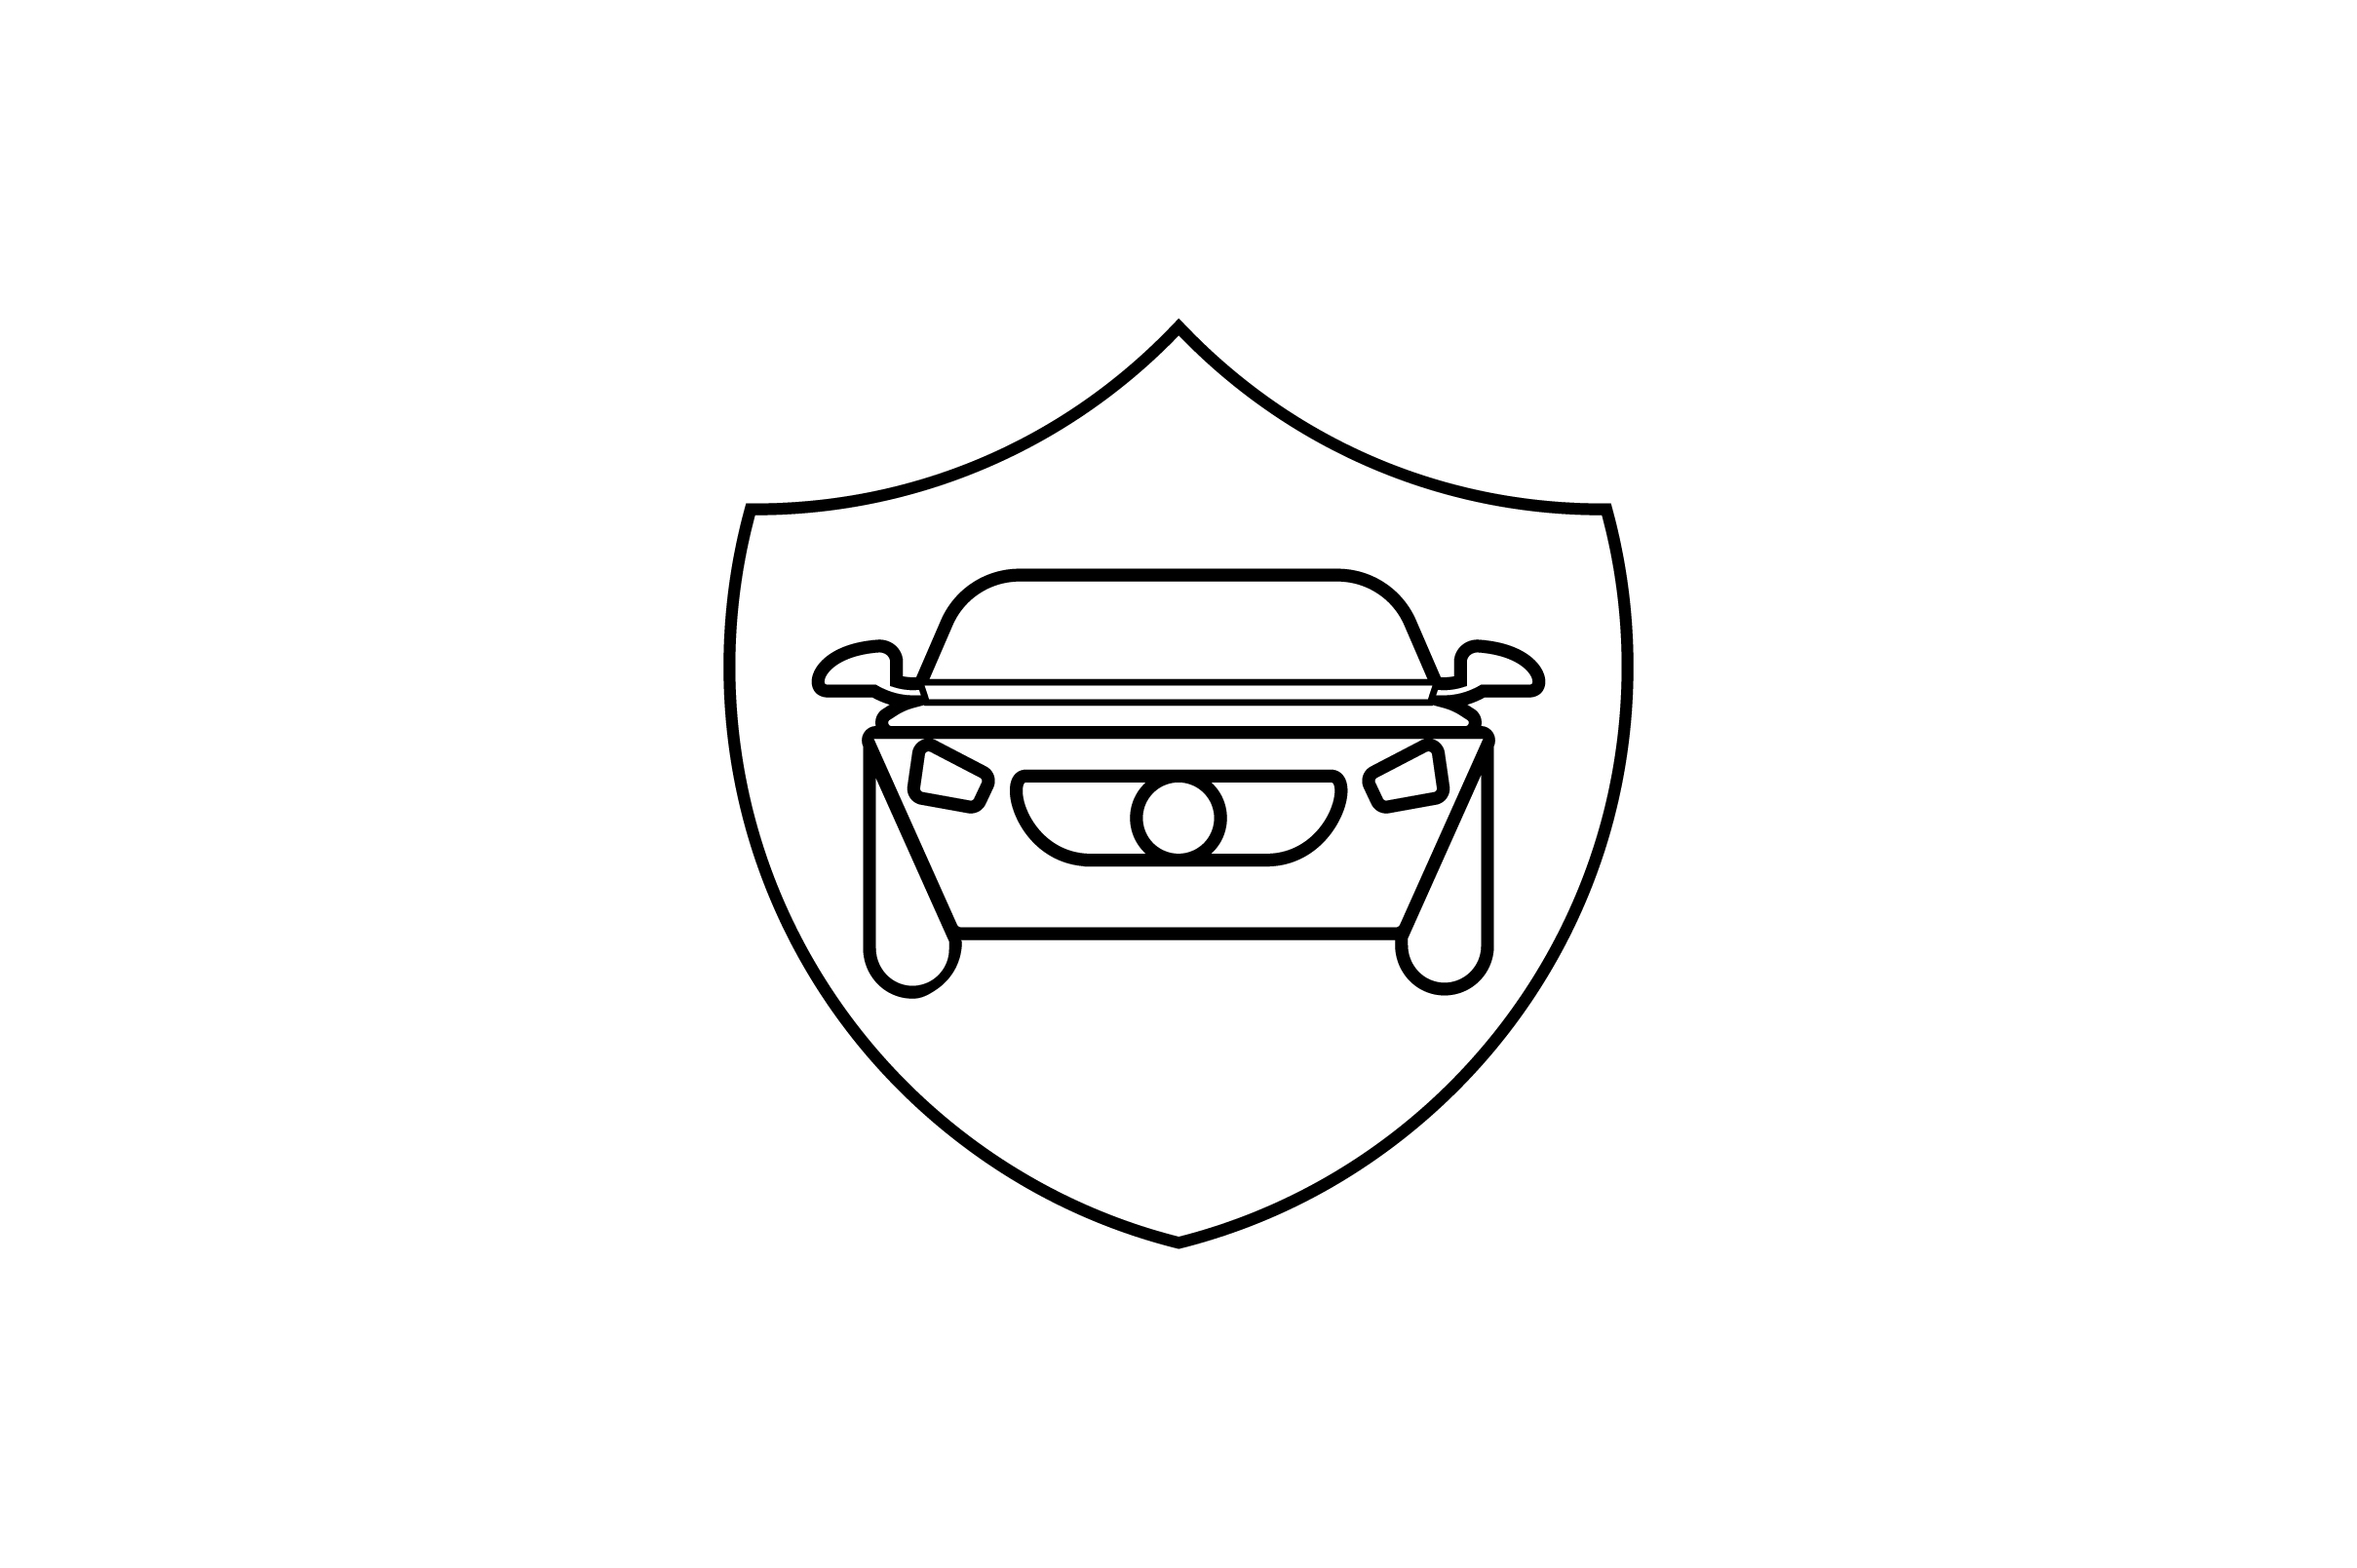 Download Free Car Shield Line Art Vector Icon Graphic By Riduwan Molla for Cricut Explore, Silhouette and other cutting machines.